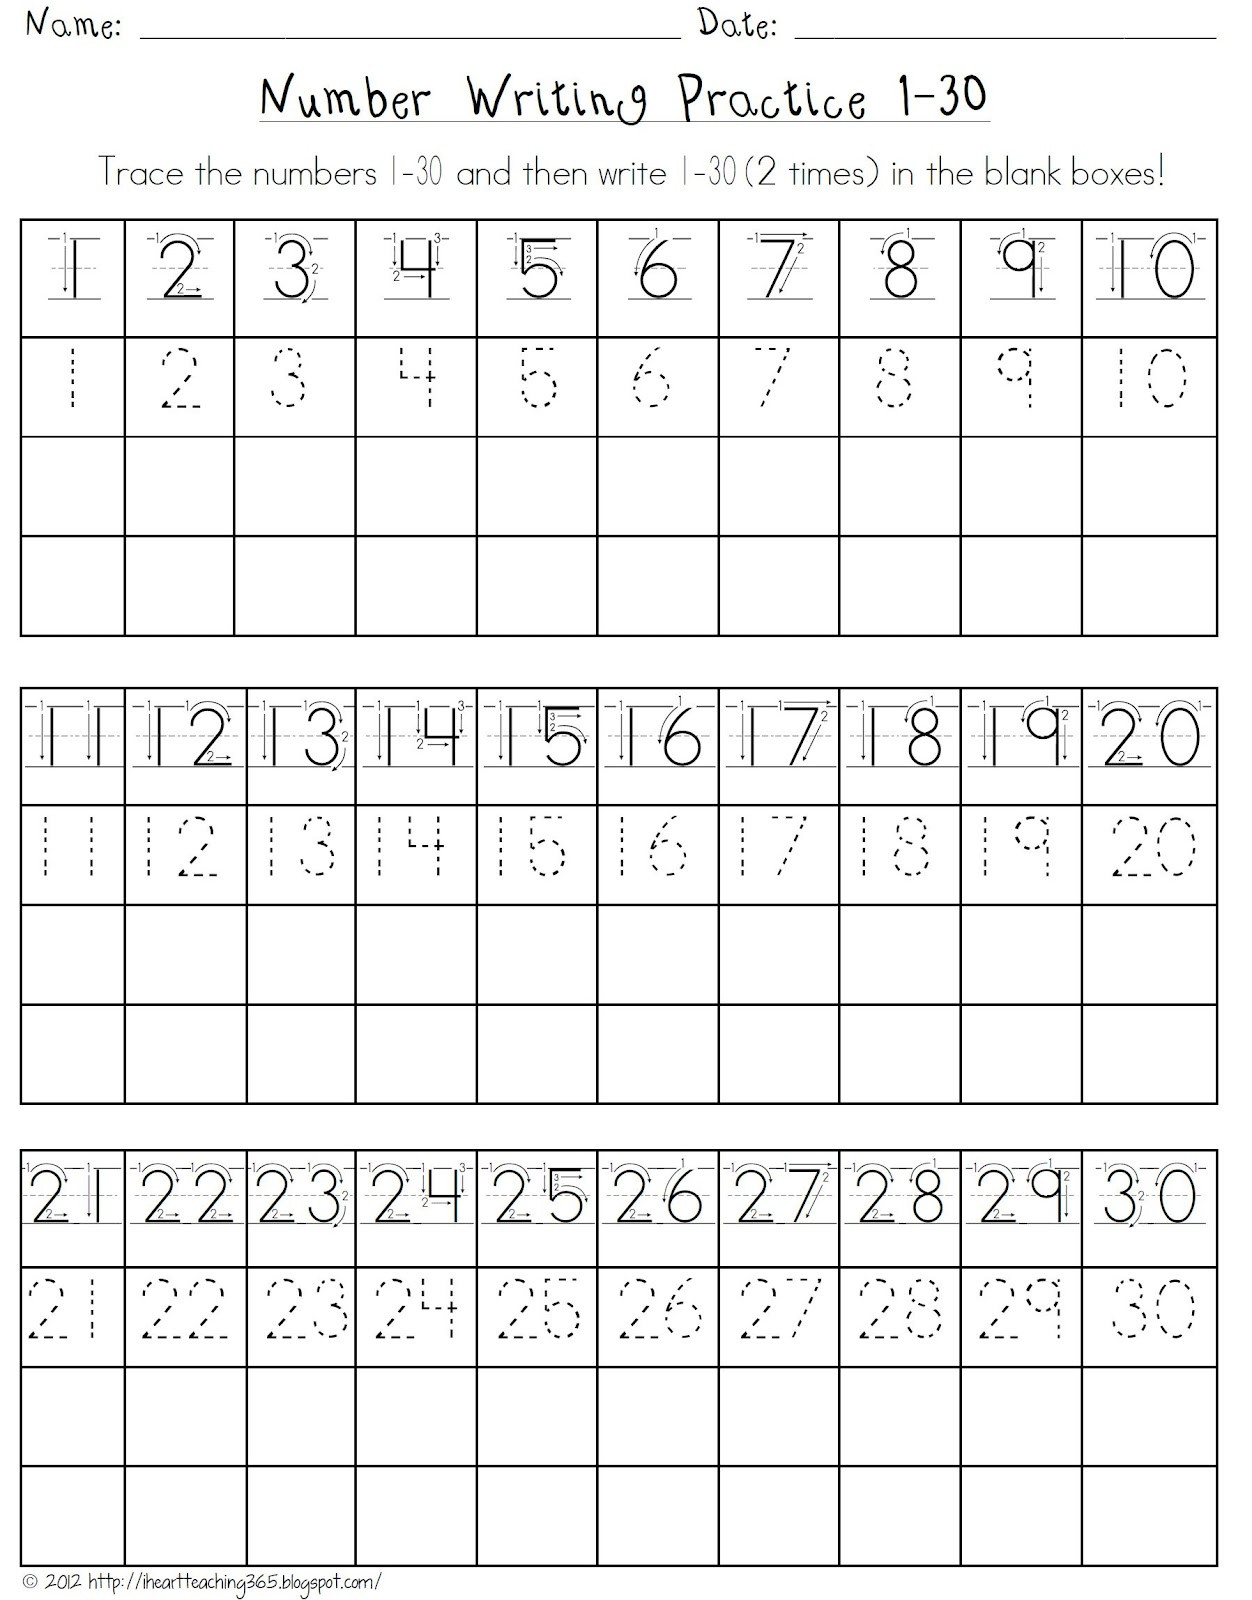 Number Writing Worksheets 1 20 Number Writing assessment 1 20